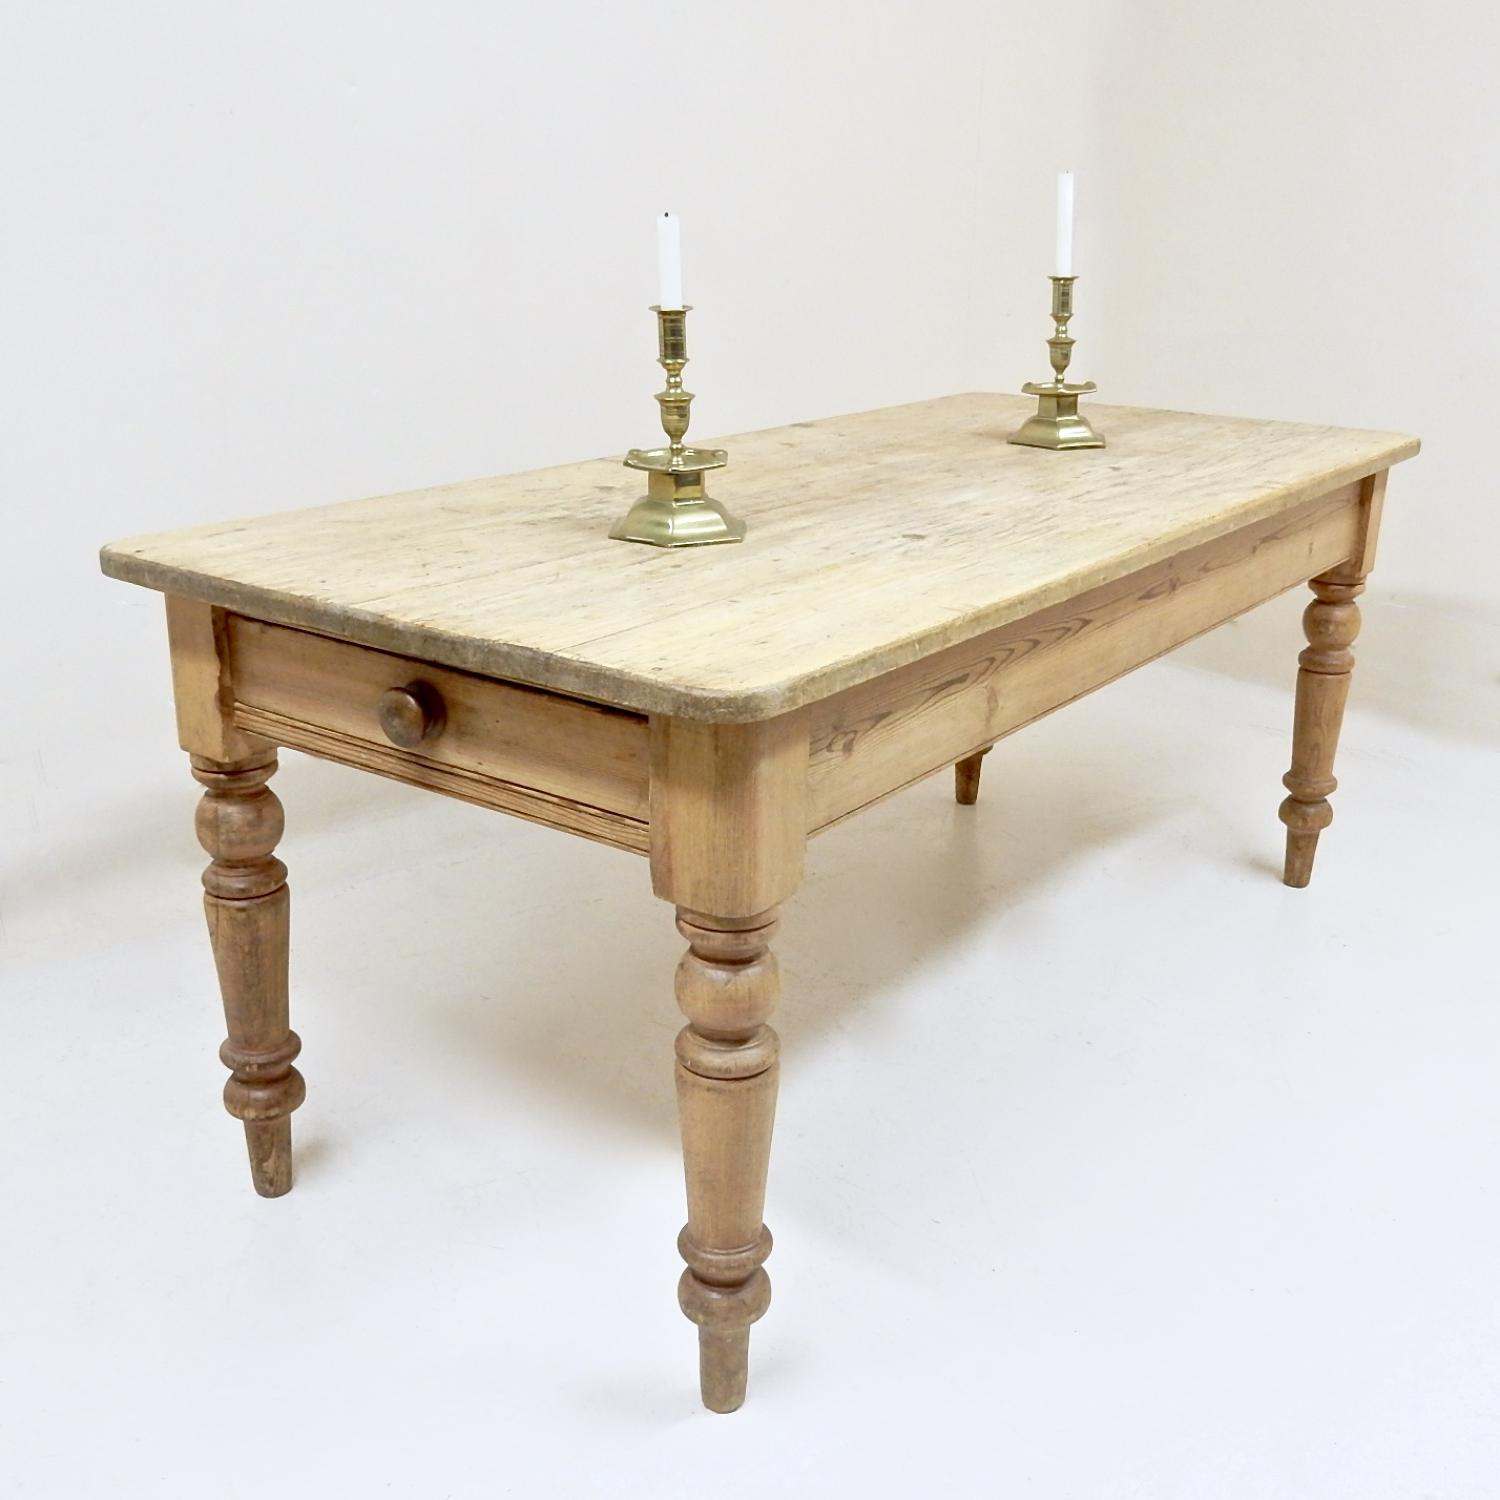 Antique Pine Farmhouse Kitchen Table In Tables